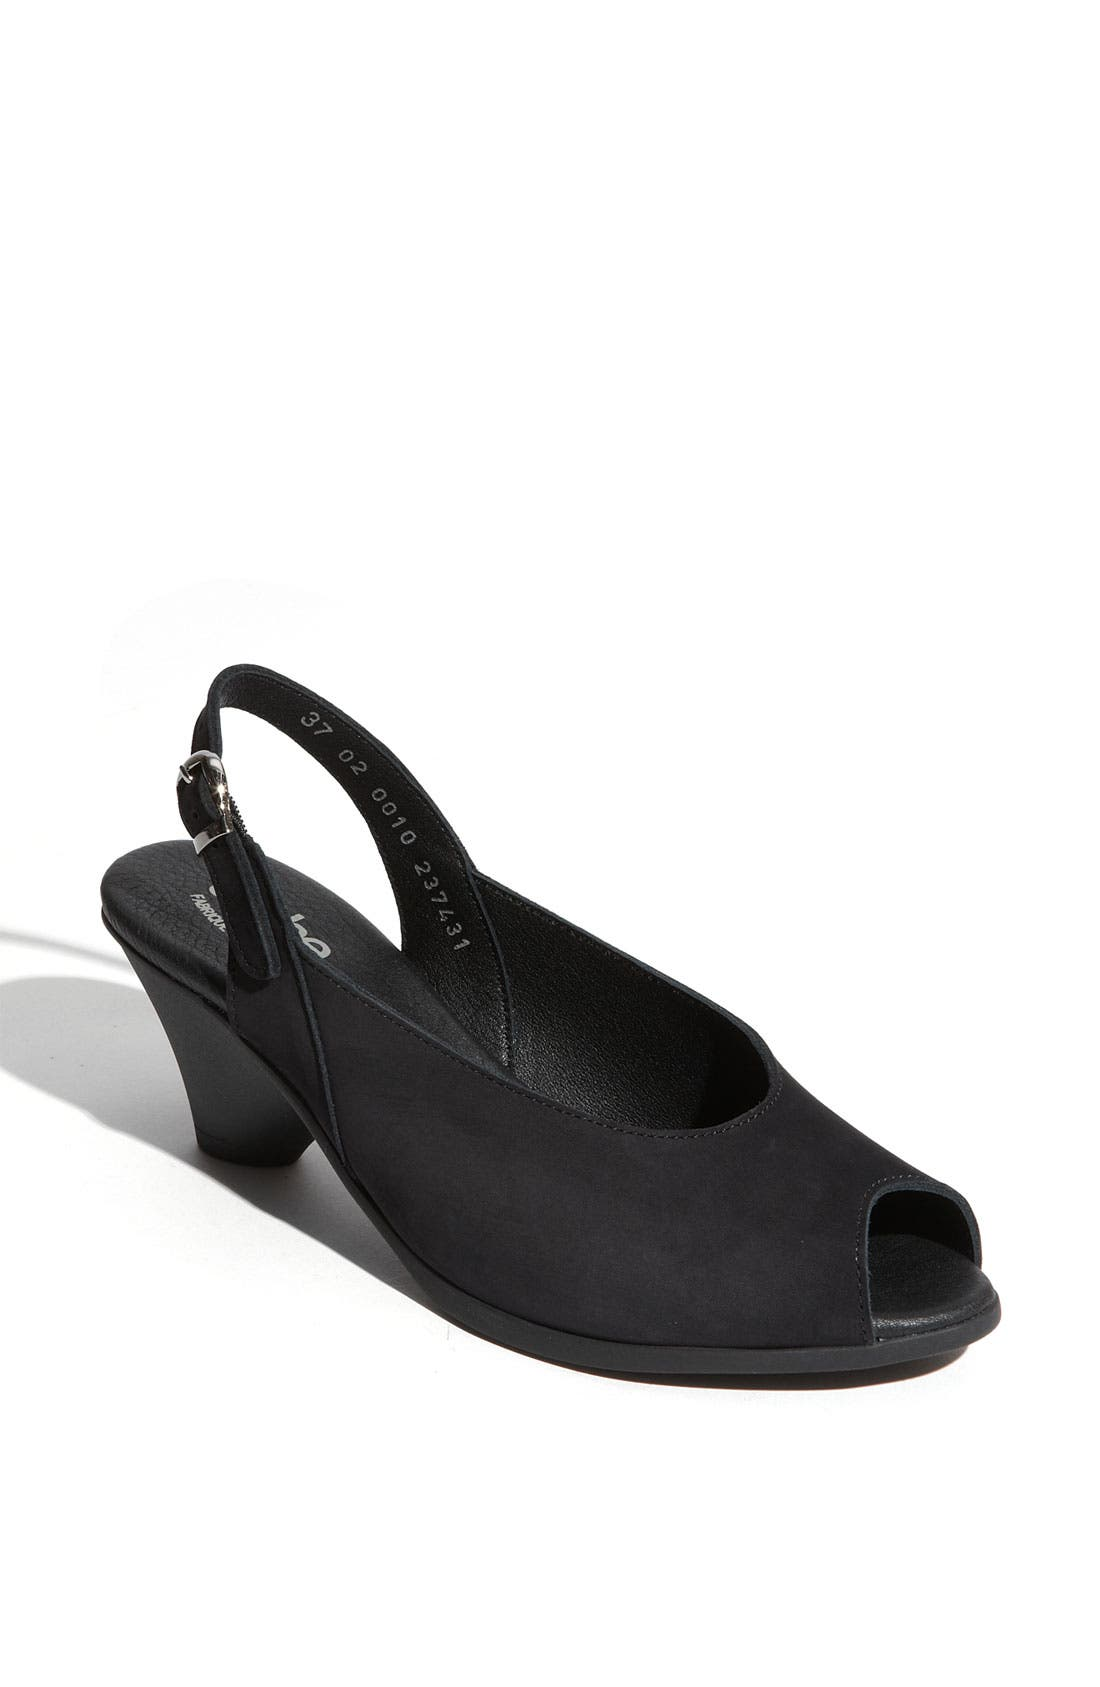 Alternate Image 1 Selected - Arche 'Exilo' Peep Toe Slingback